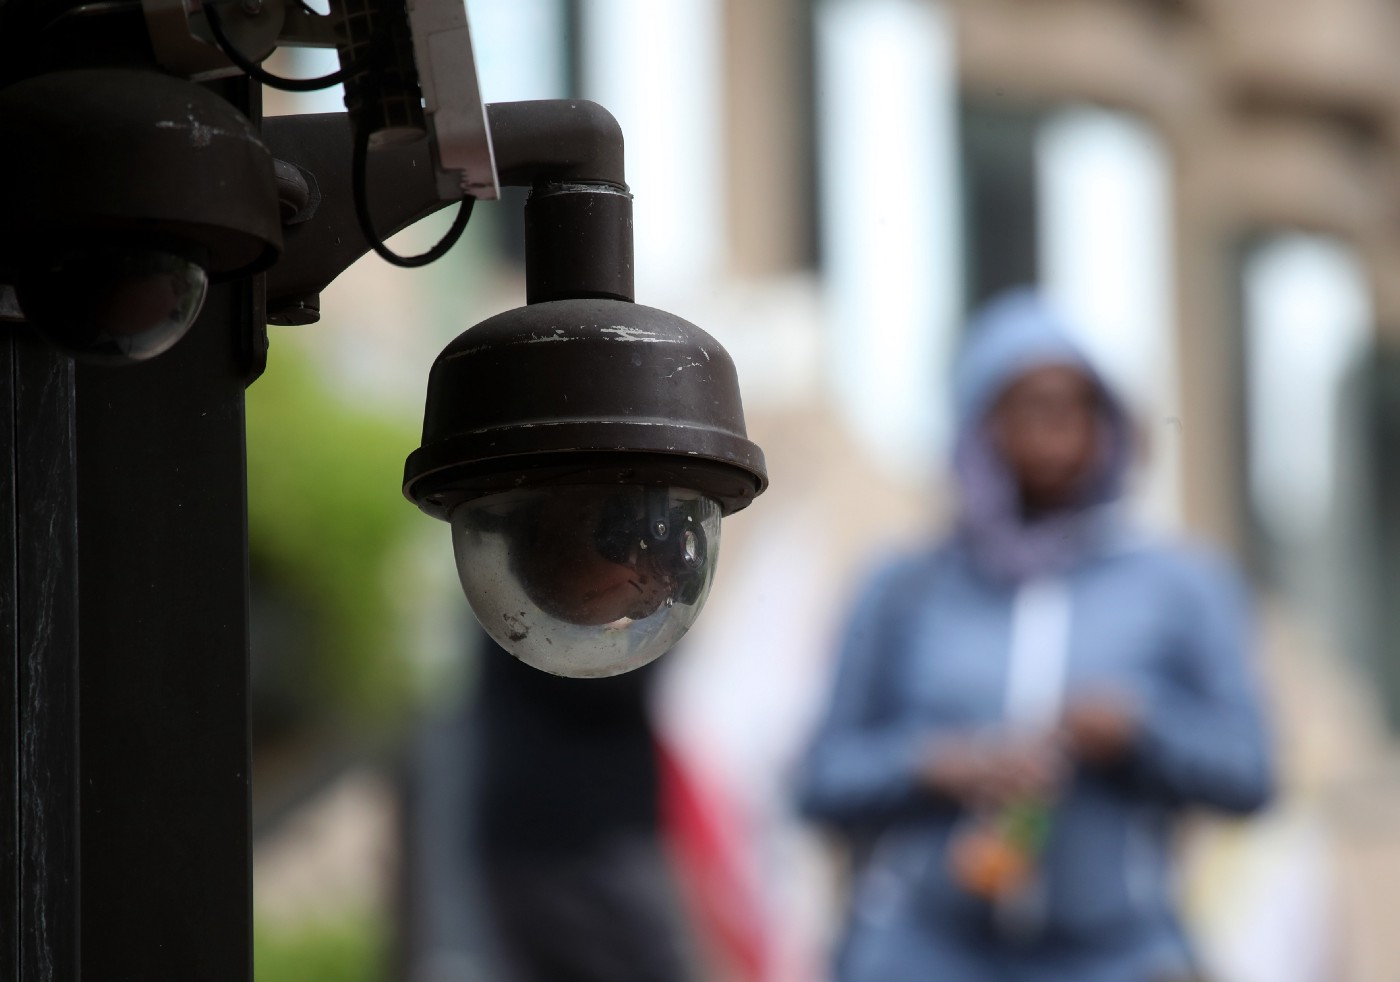 A video surveillance camera hangs from the side of a building in San Francisco, California.